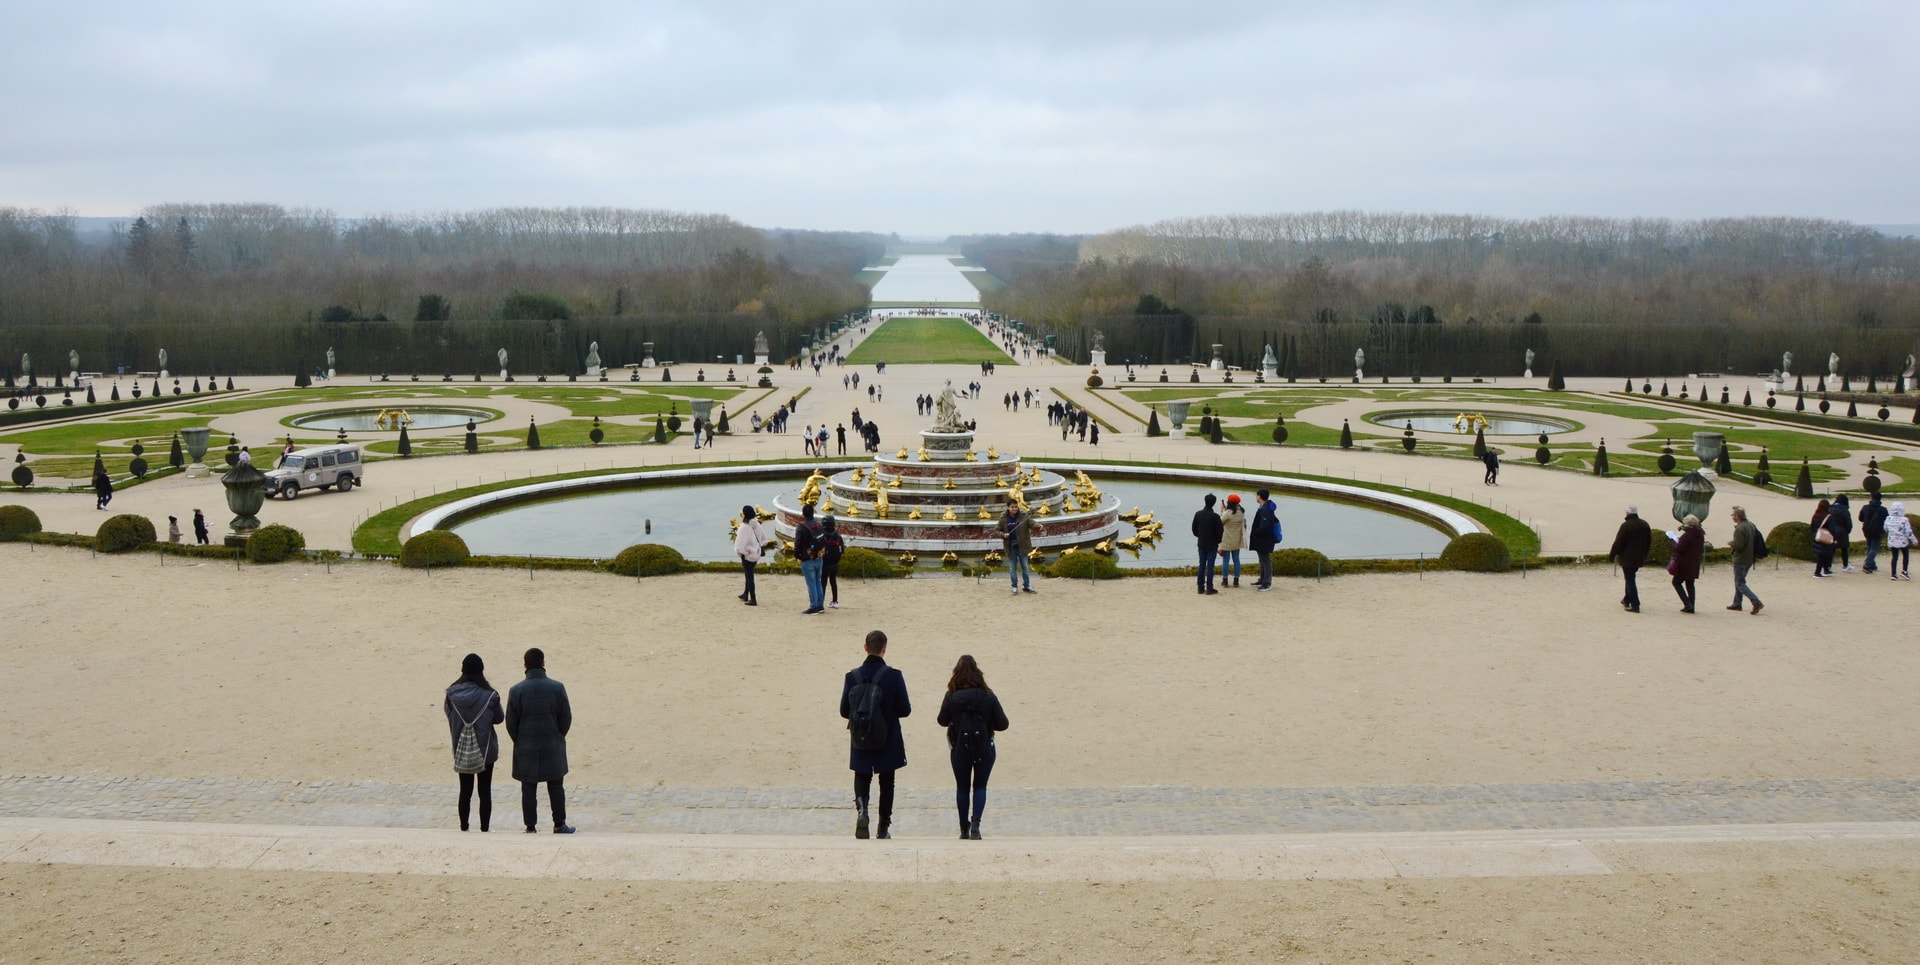 Gardens of the Versailles Palace